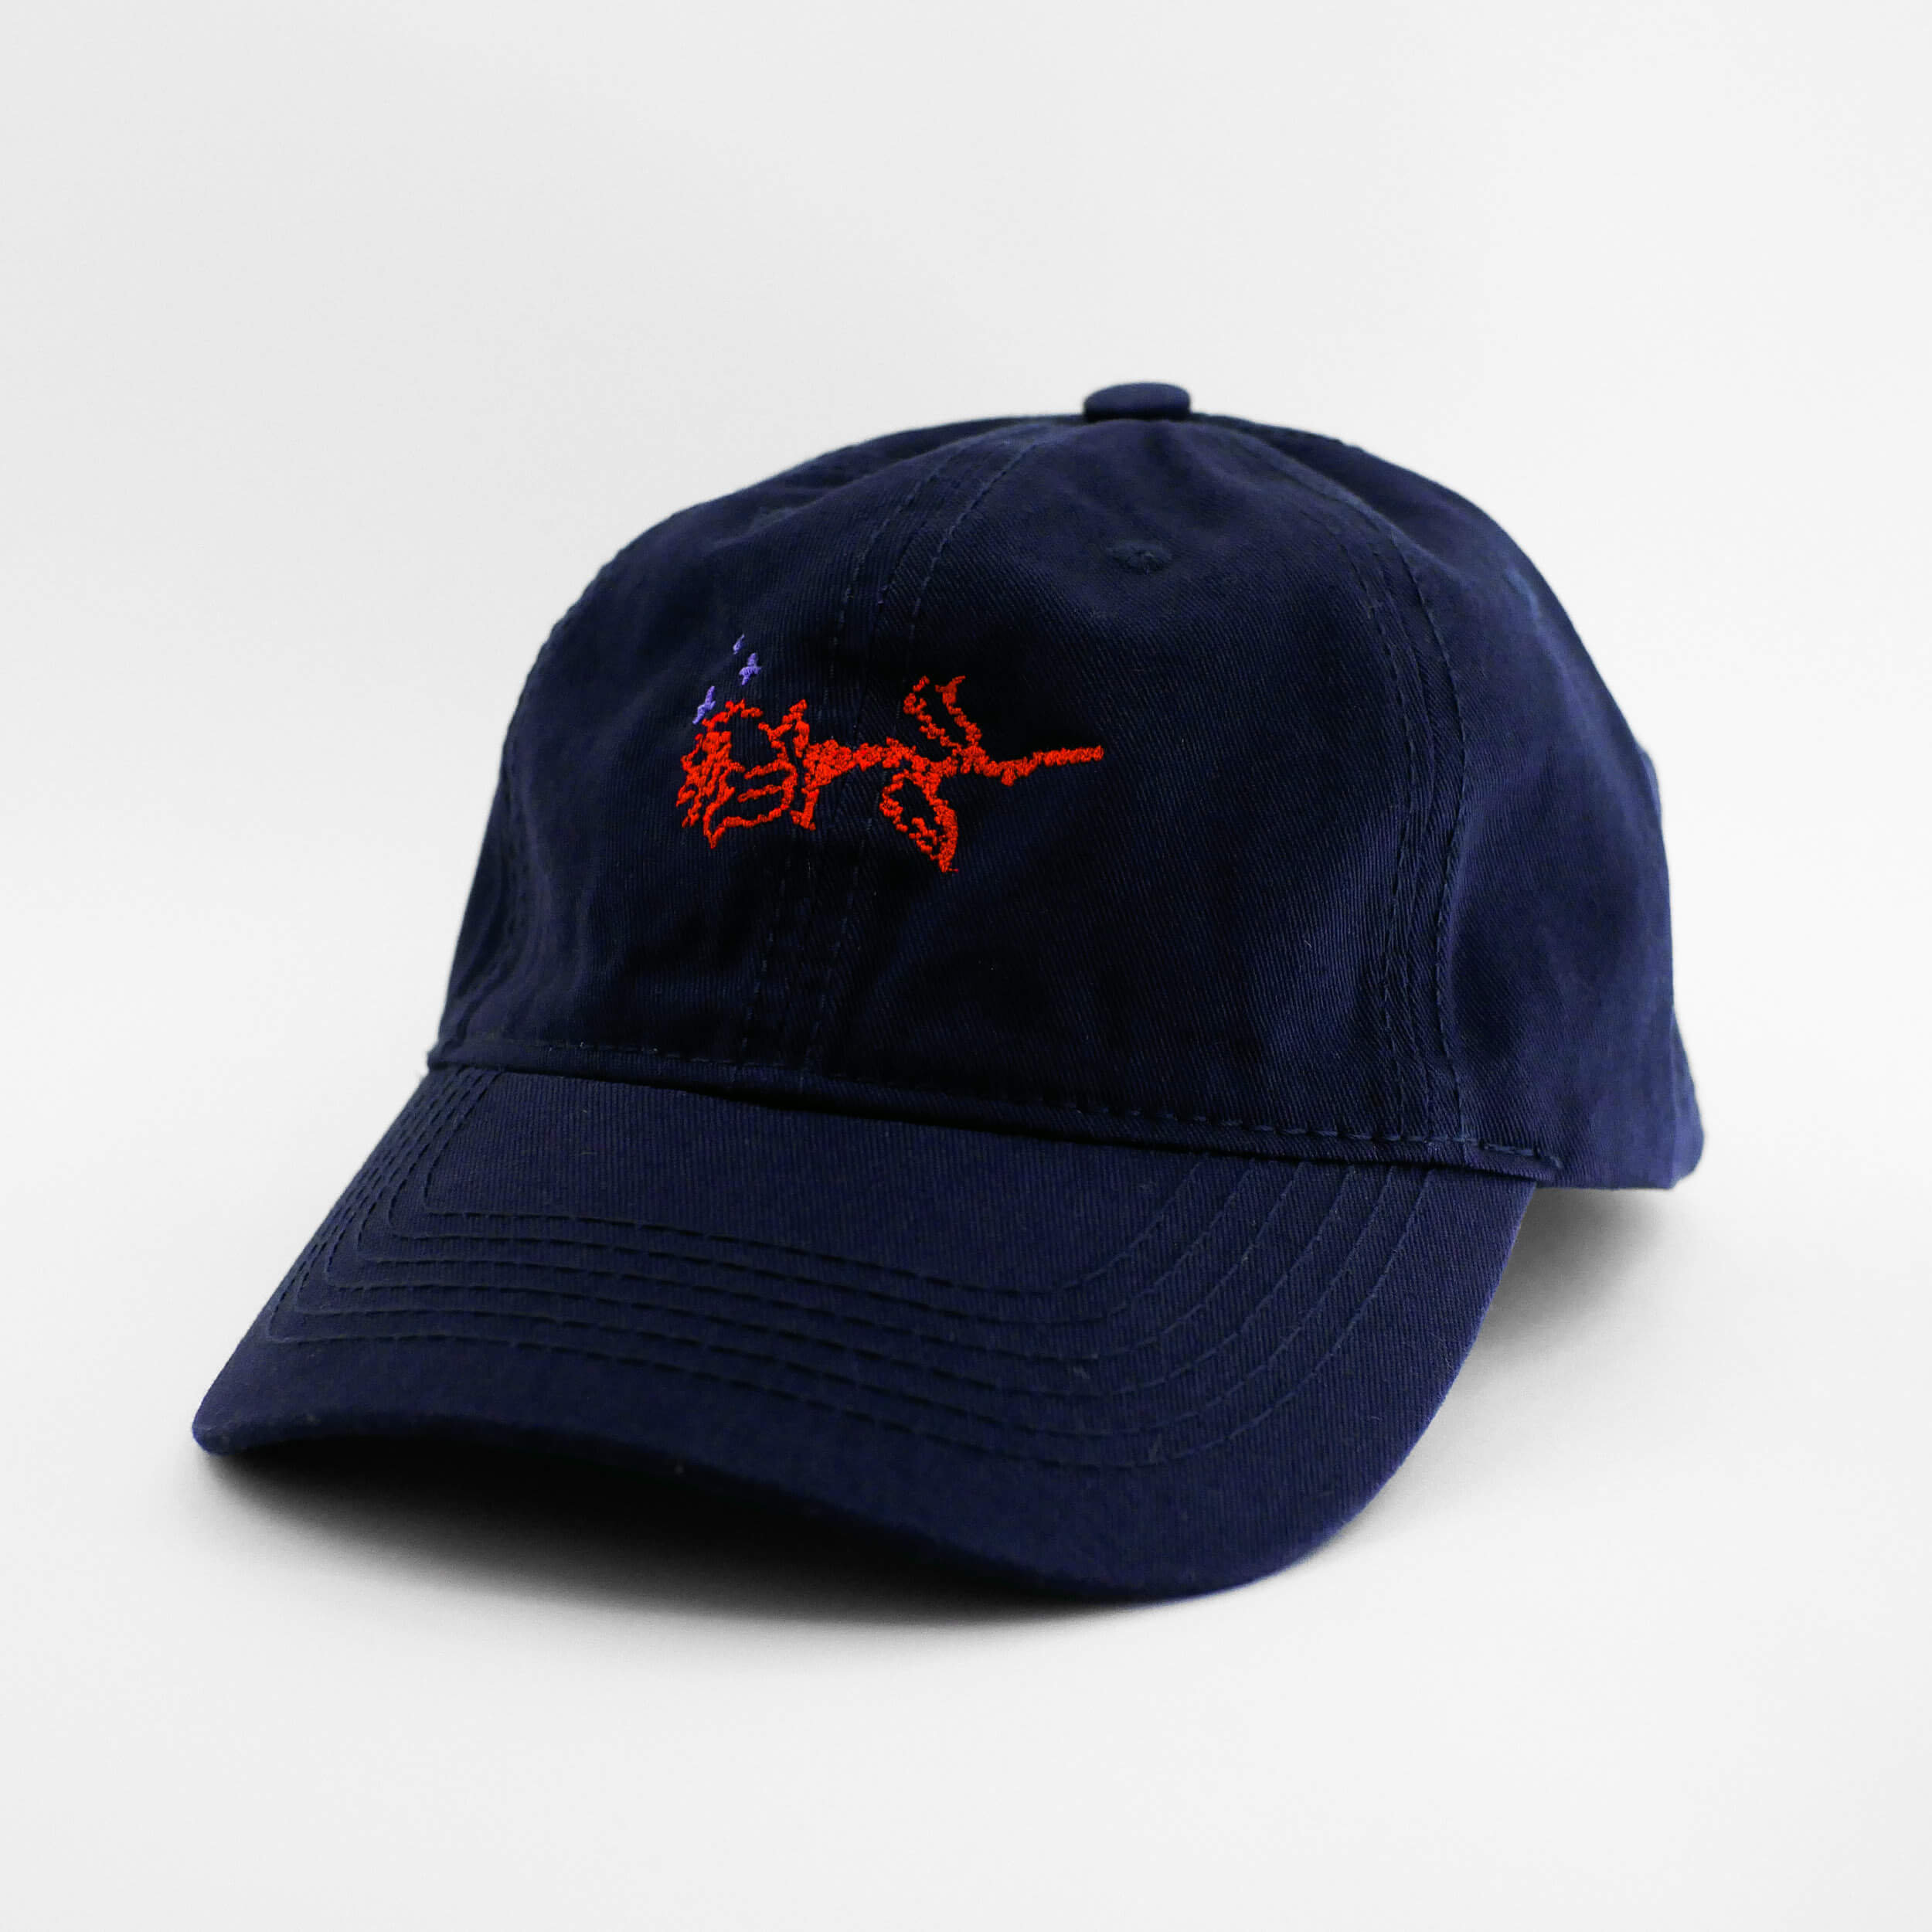 Angle view of the embroidered ASCII Rose navy blue dad hat from PHOSIS Clothing